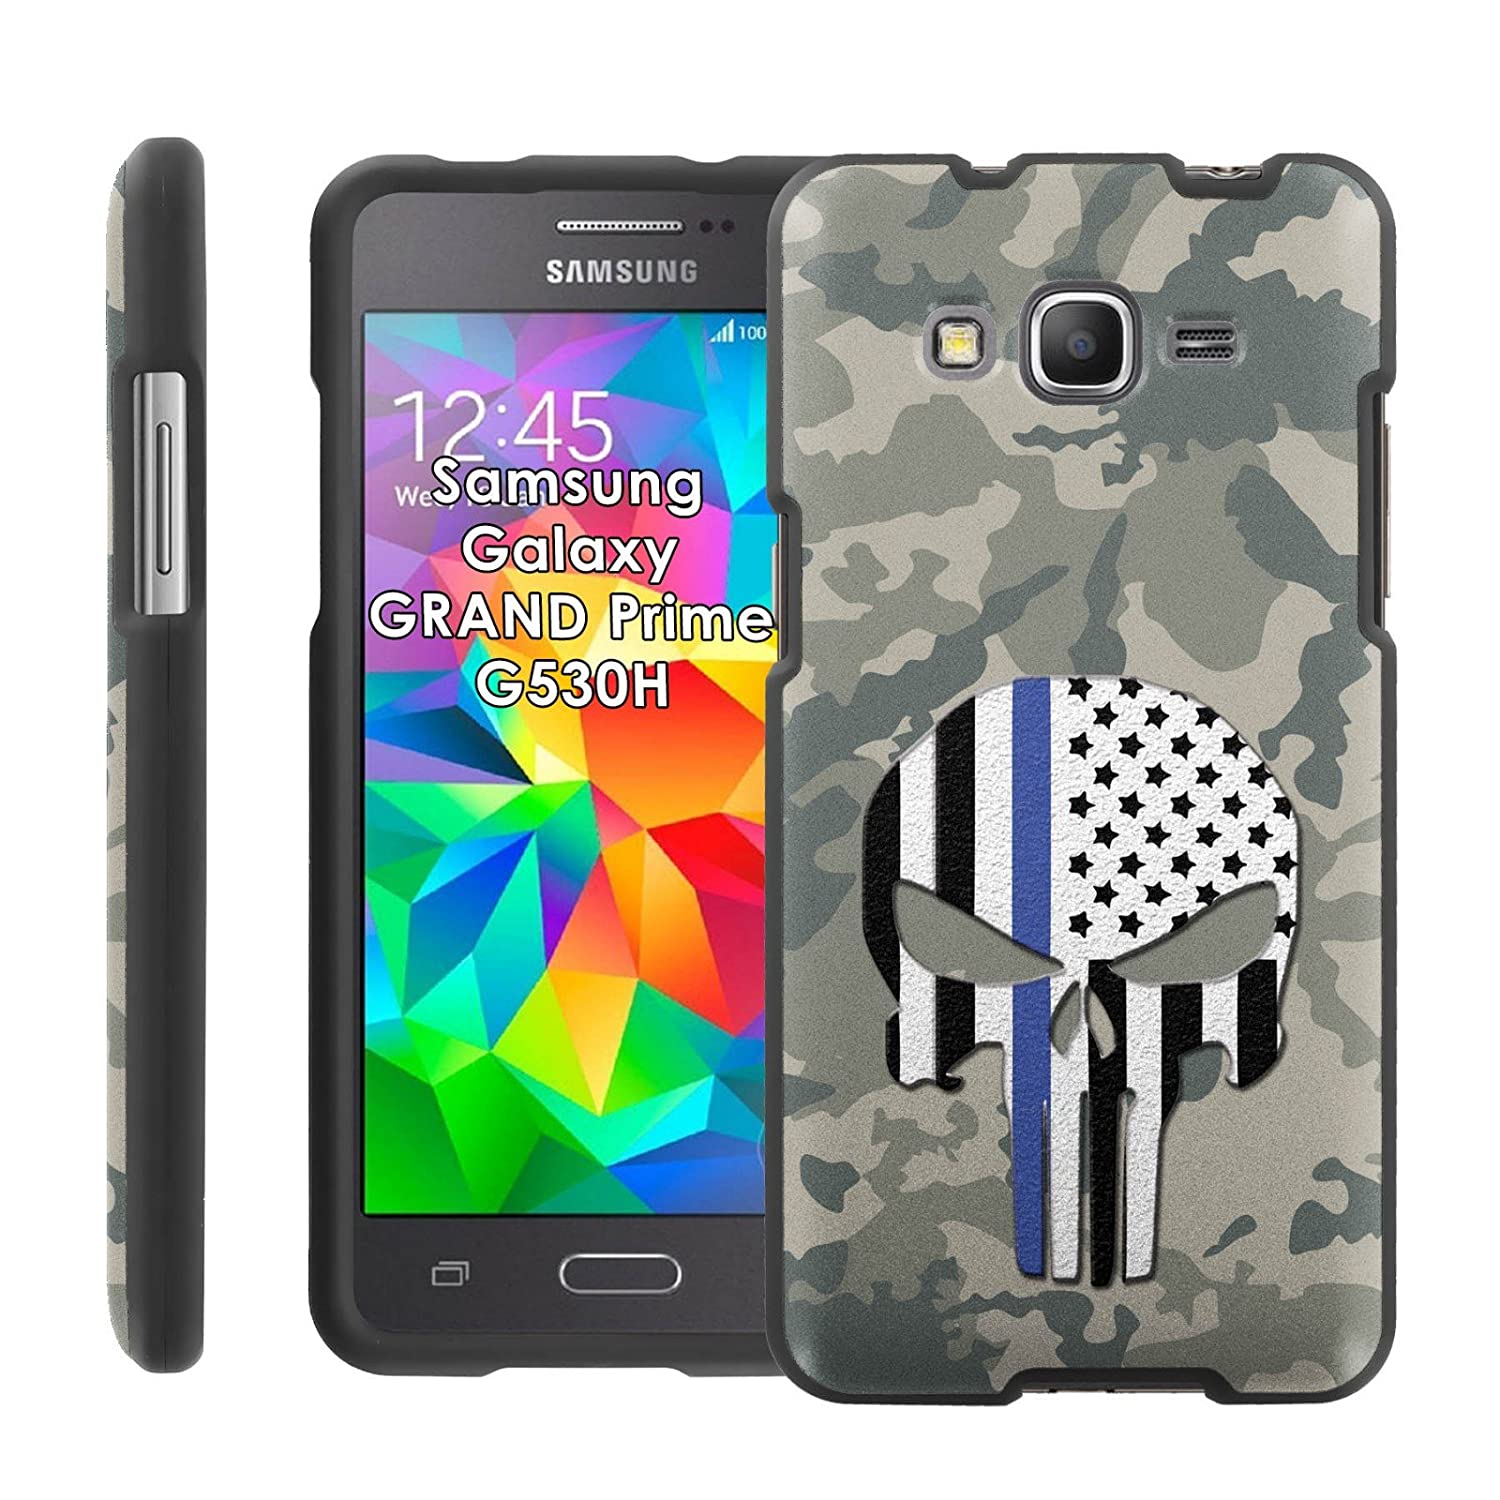 Amazon Samsung Galaxy [GRAND Prime] G530H Clam Shell Phone Cover Camo Skull by Case86 Cell Phones & Accessories